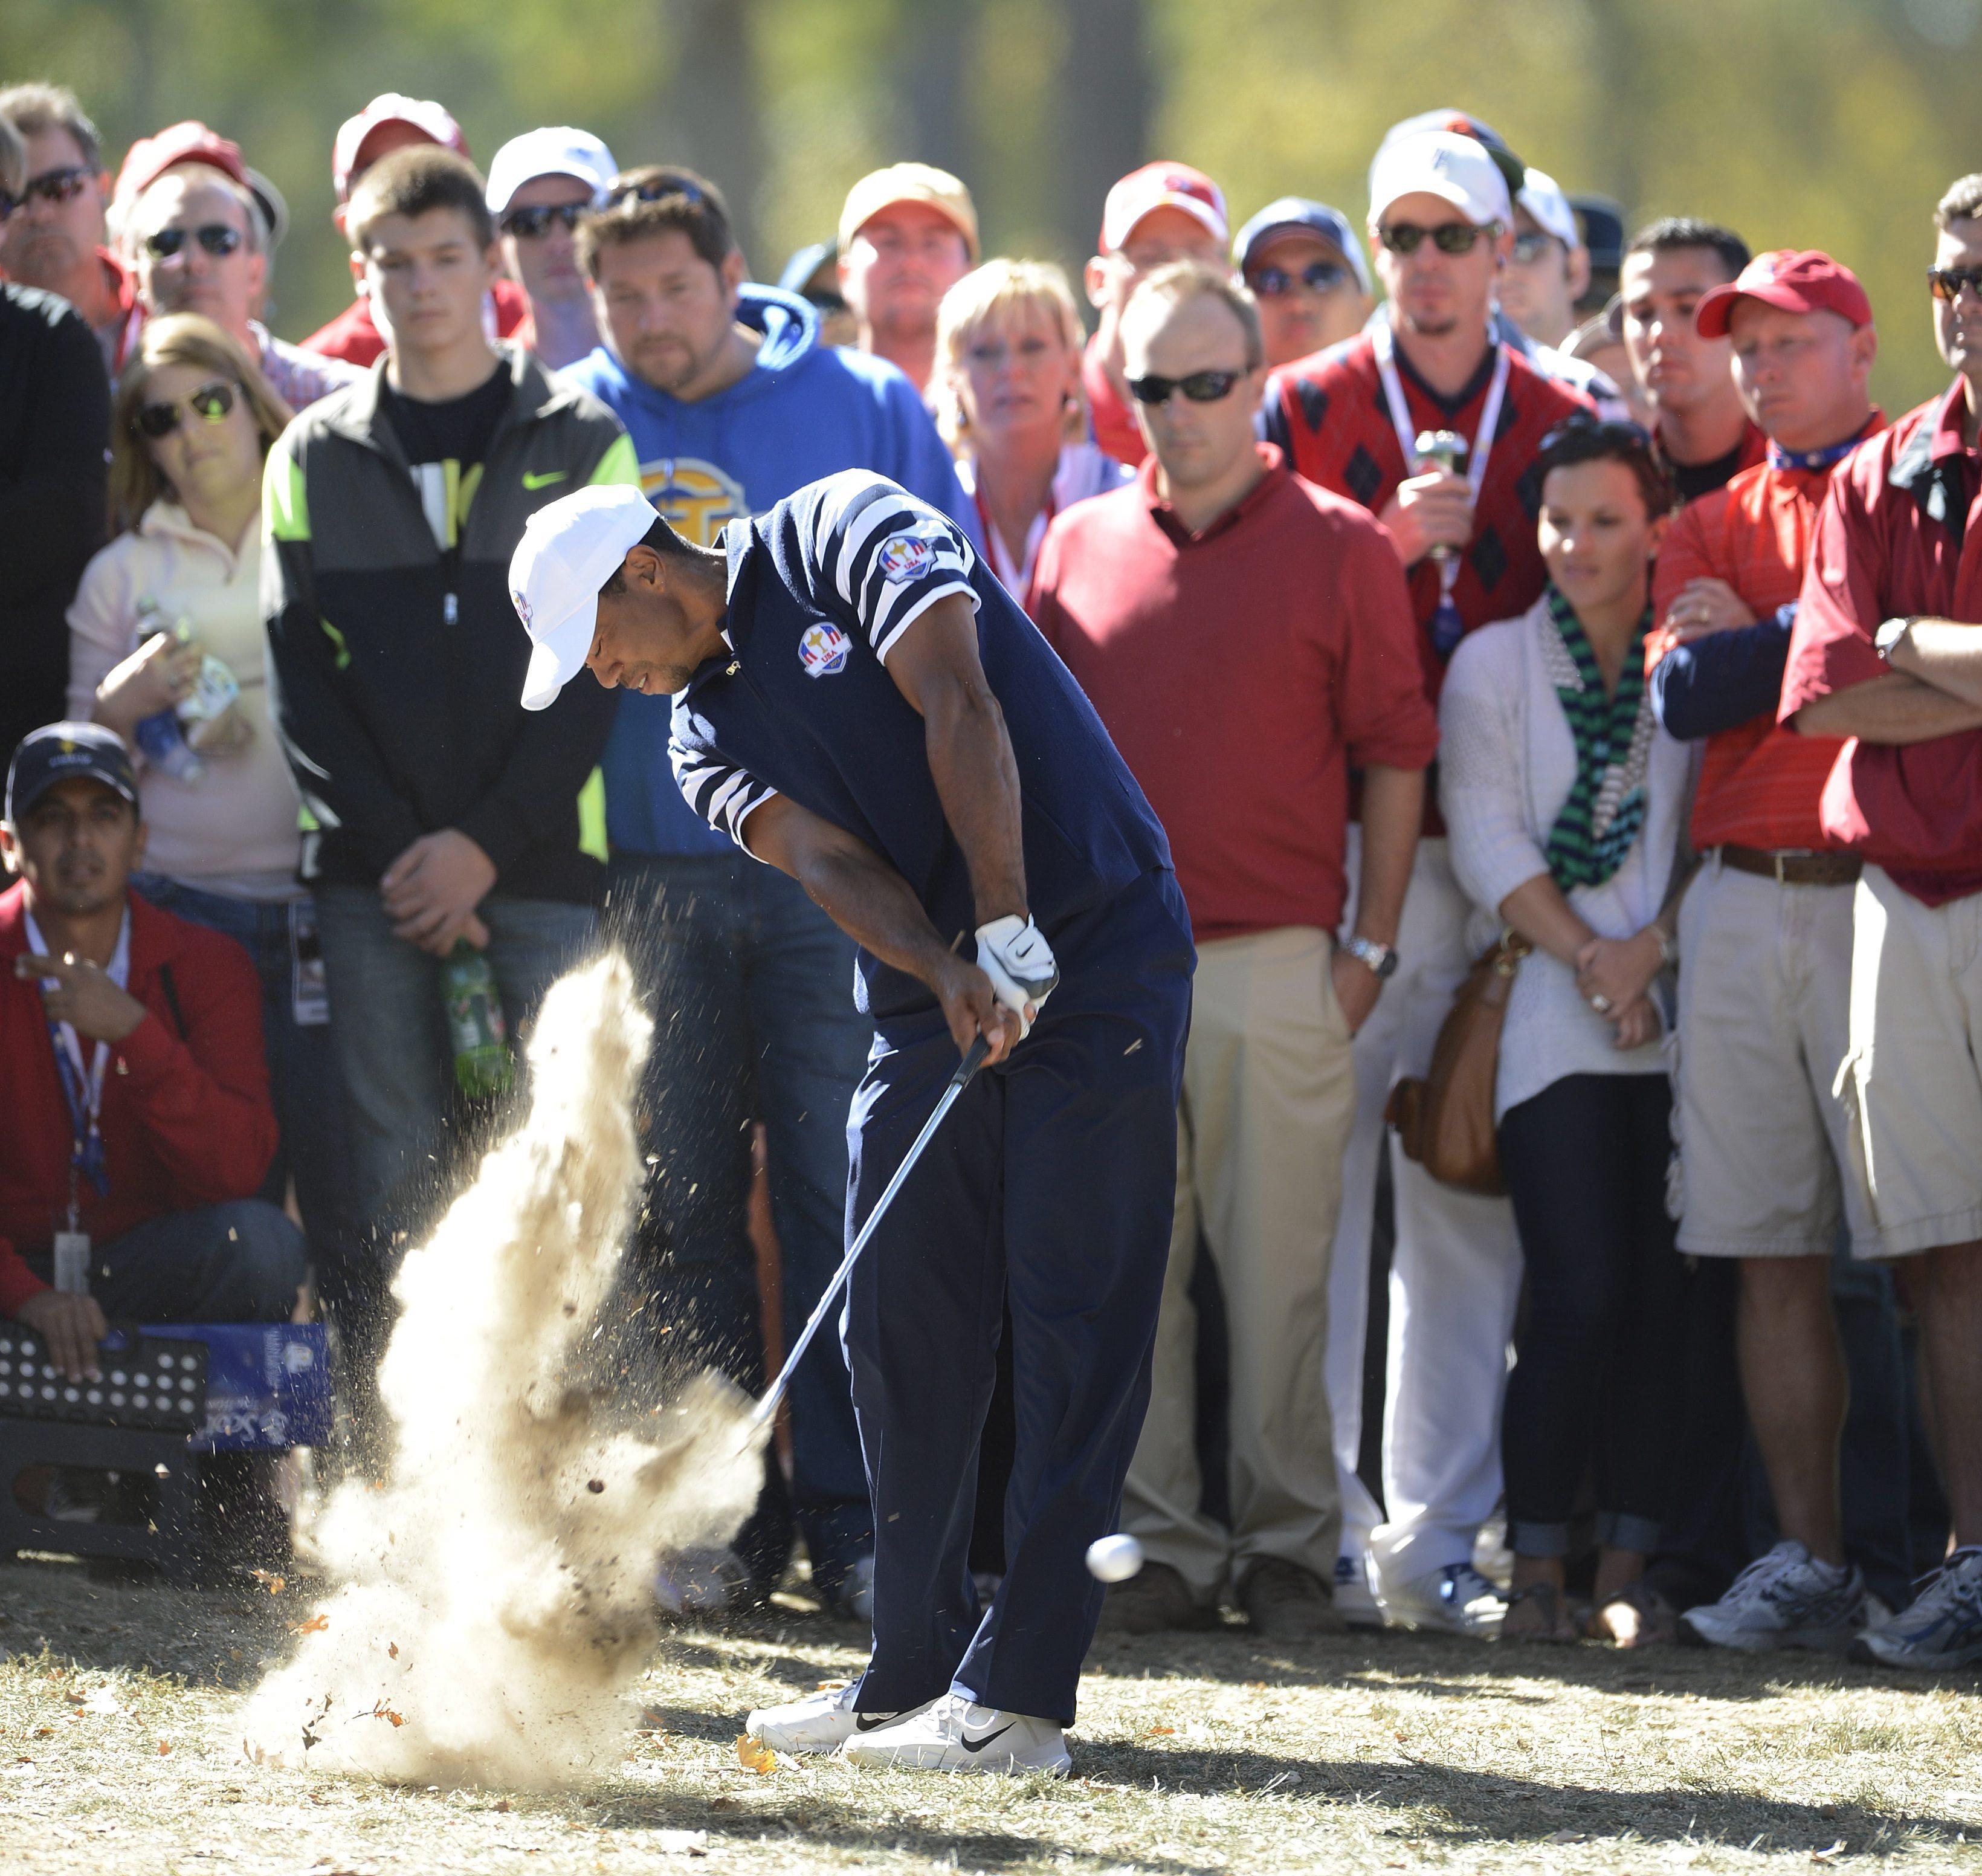 Tiger Woods is a typically wild driver of the ball but makes lots of birdies, suggesting he is better suited to fourballs